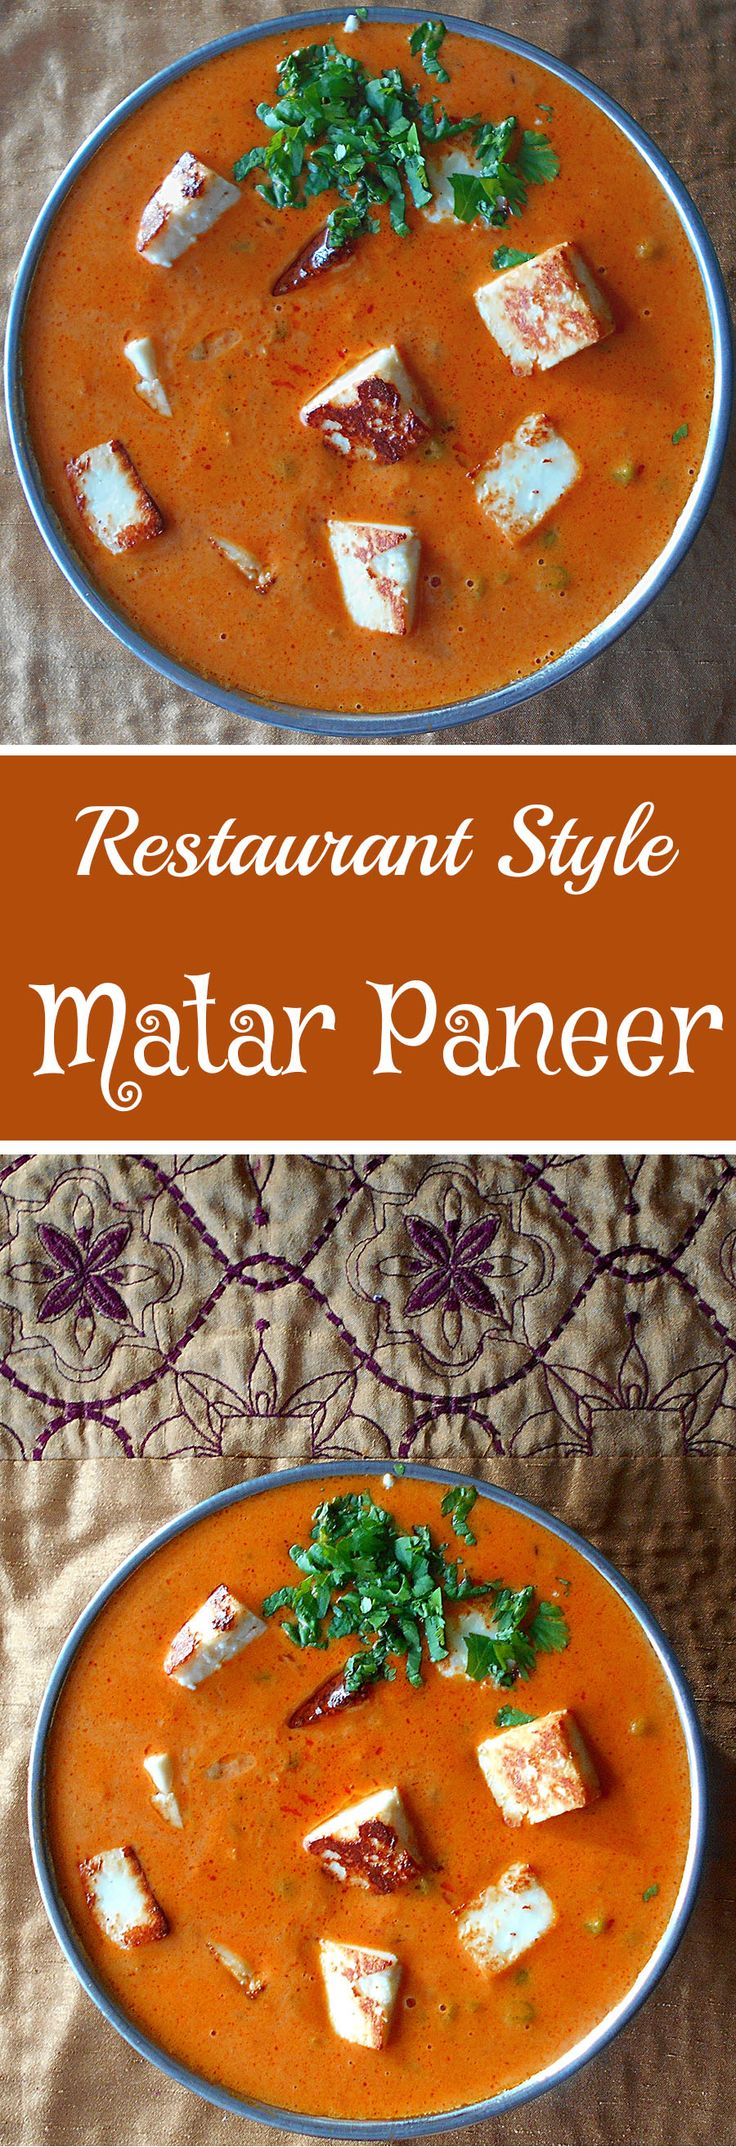 Now you can make Indian Restaurant food at home with this easy to make matar paneer recipe. Quick vegetarian recipe for dinner. Indian Food is delicious and easy to make.